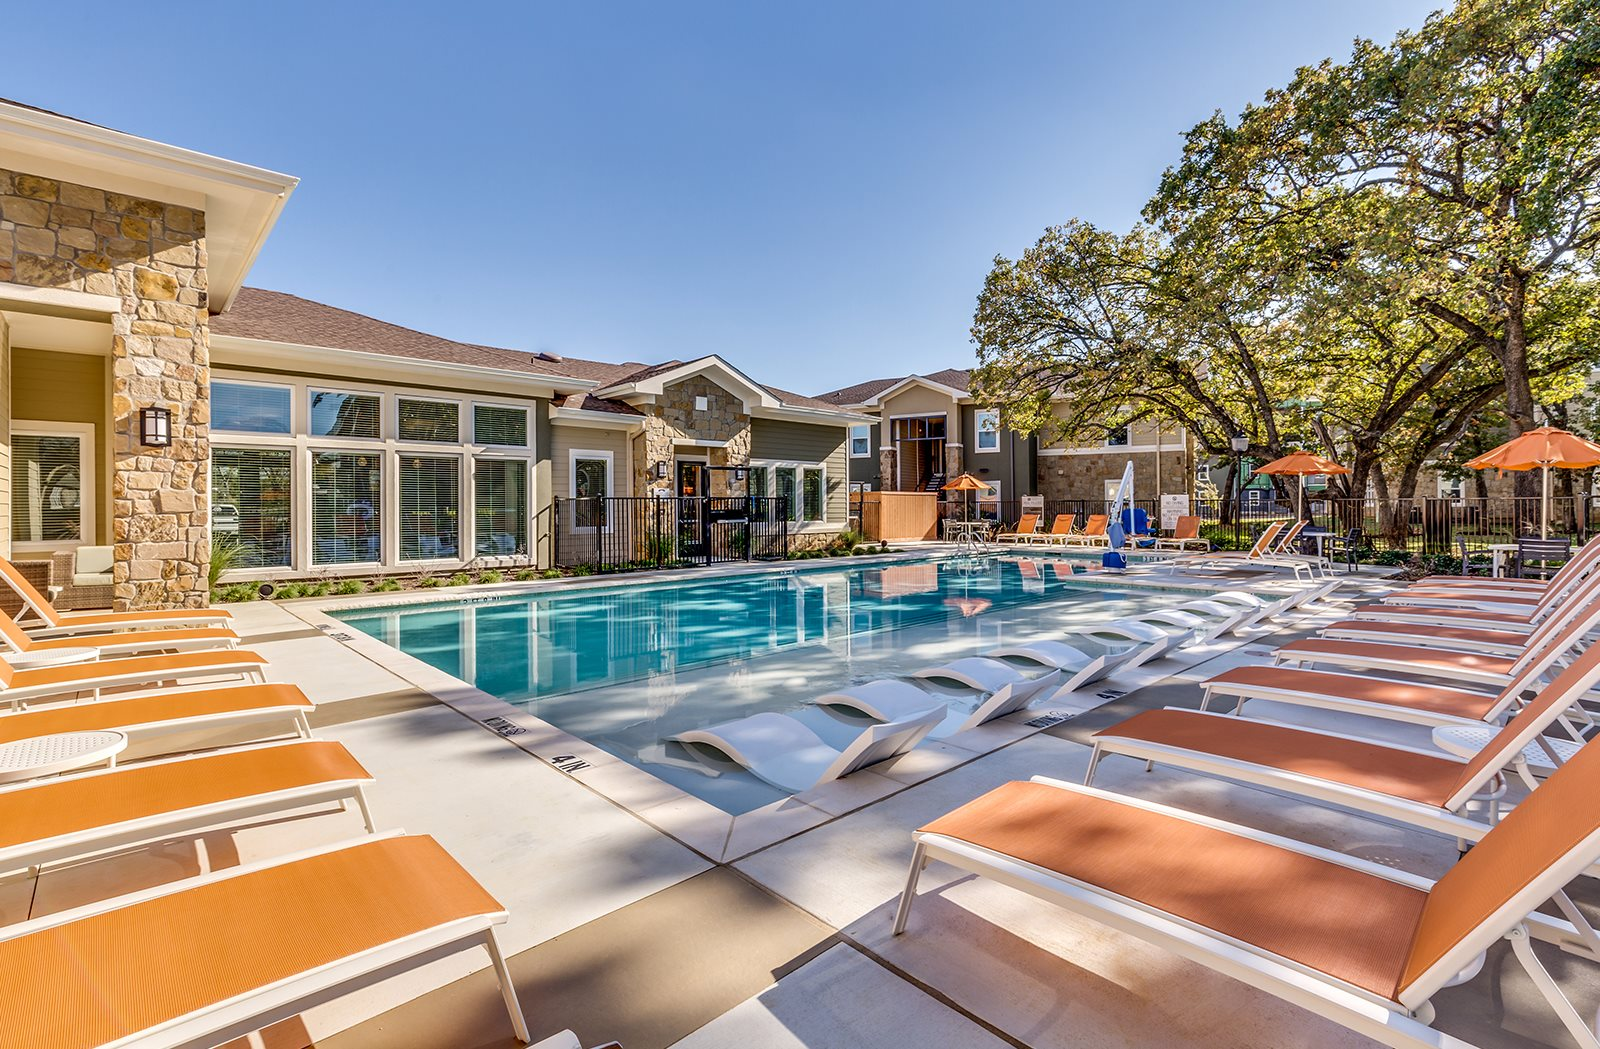 Sparkling Swimming Pool with Grill at The Veranda, Denton, TX